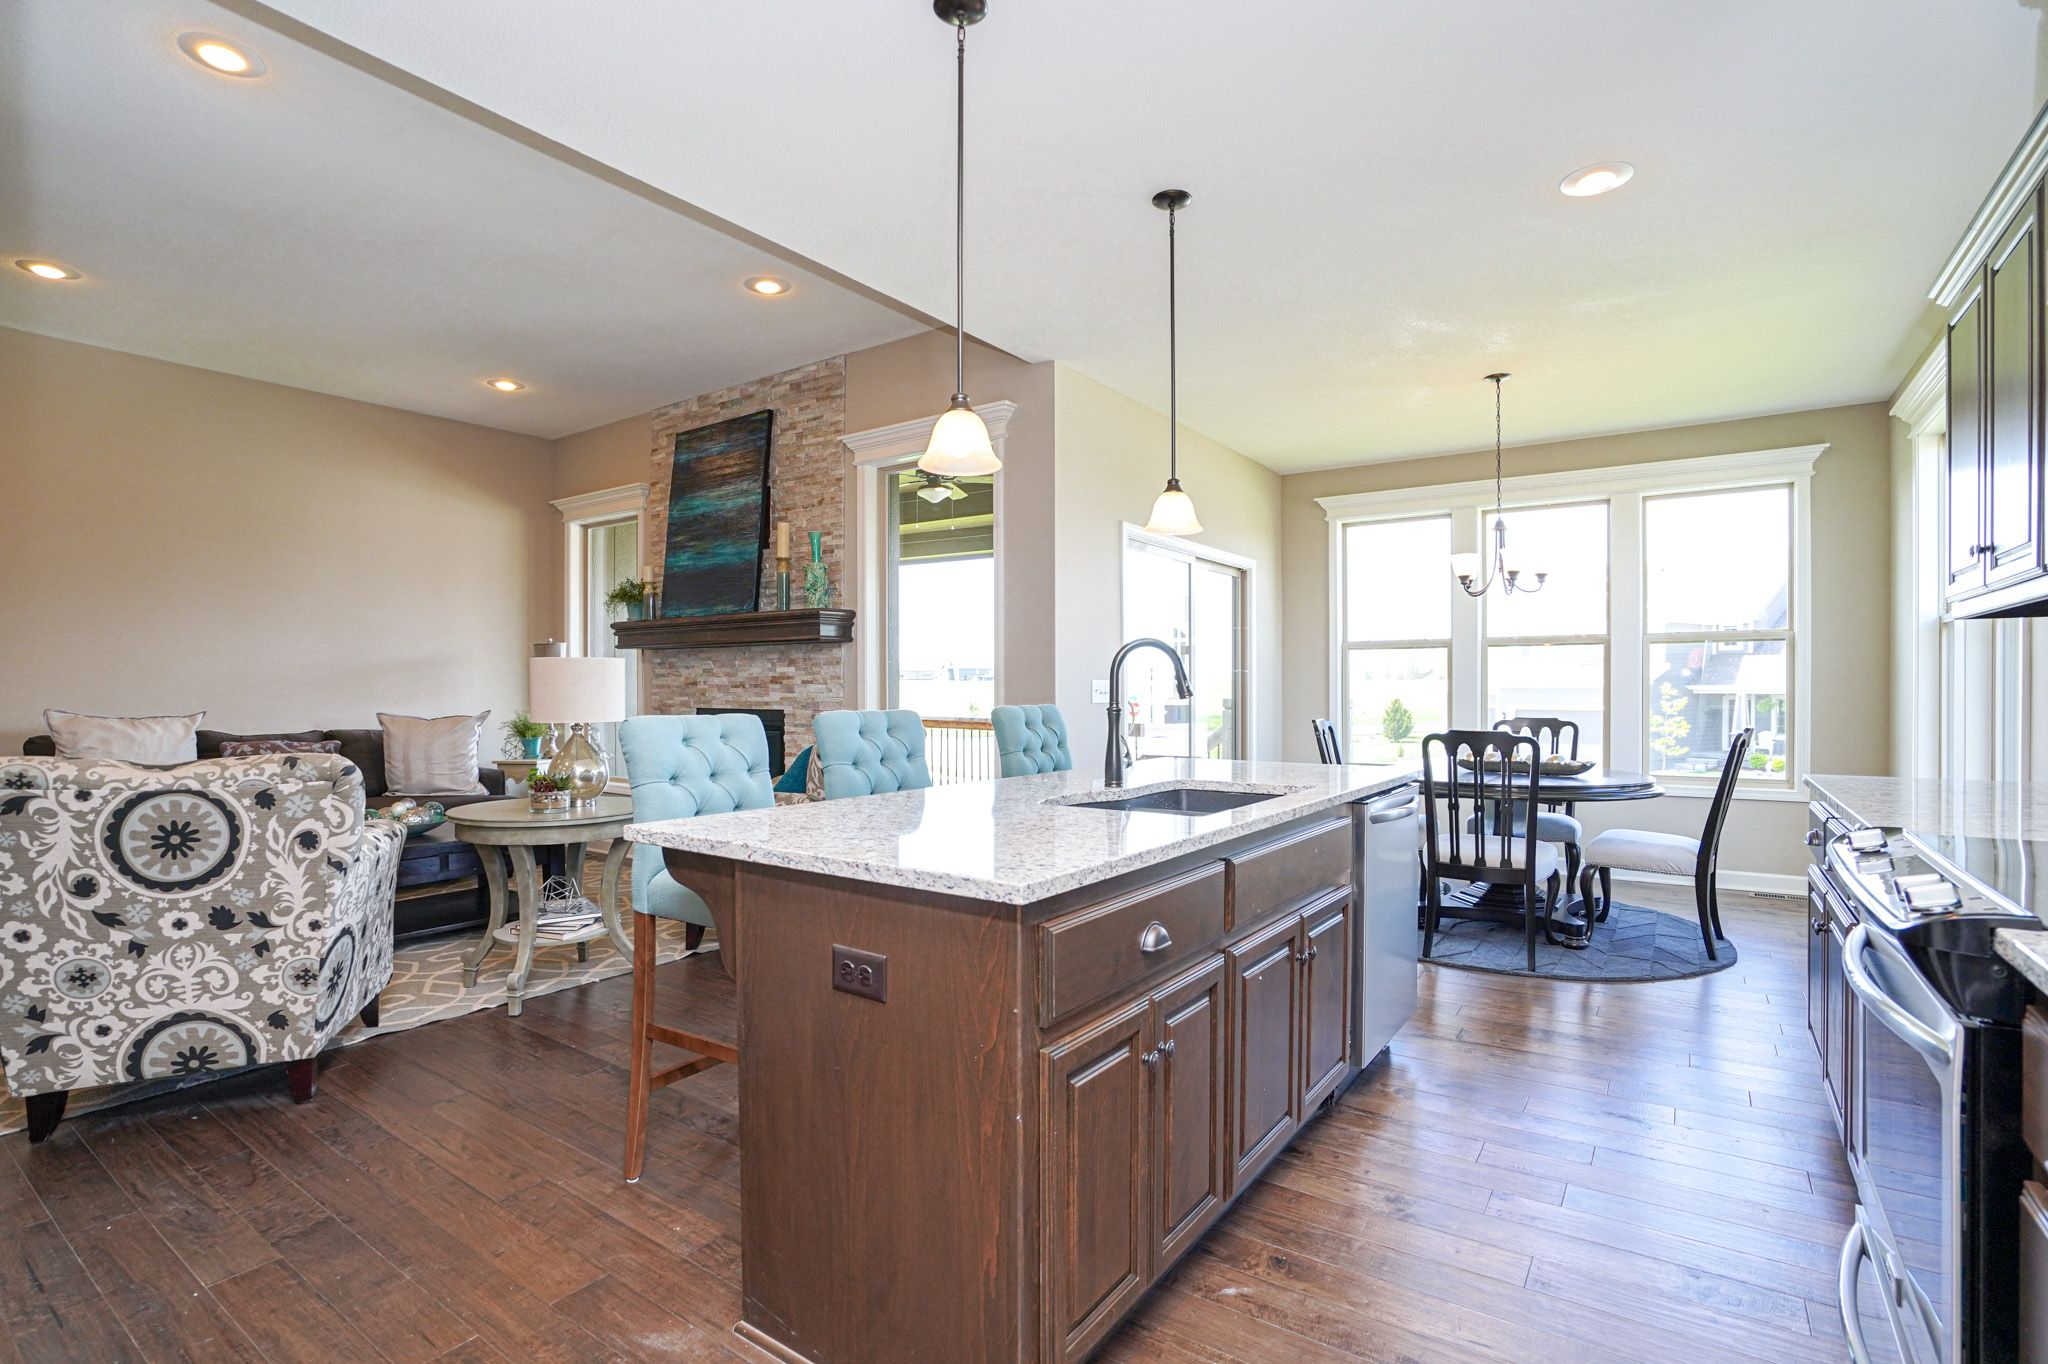 Kitchen featured in the Charlotte - IA By Summit Homes in Des Moines, IA